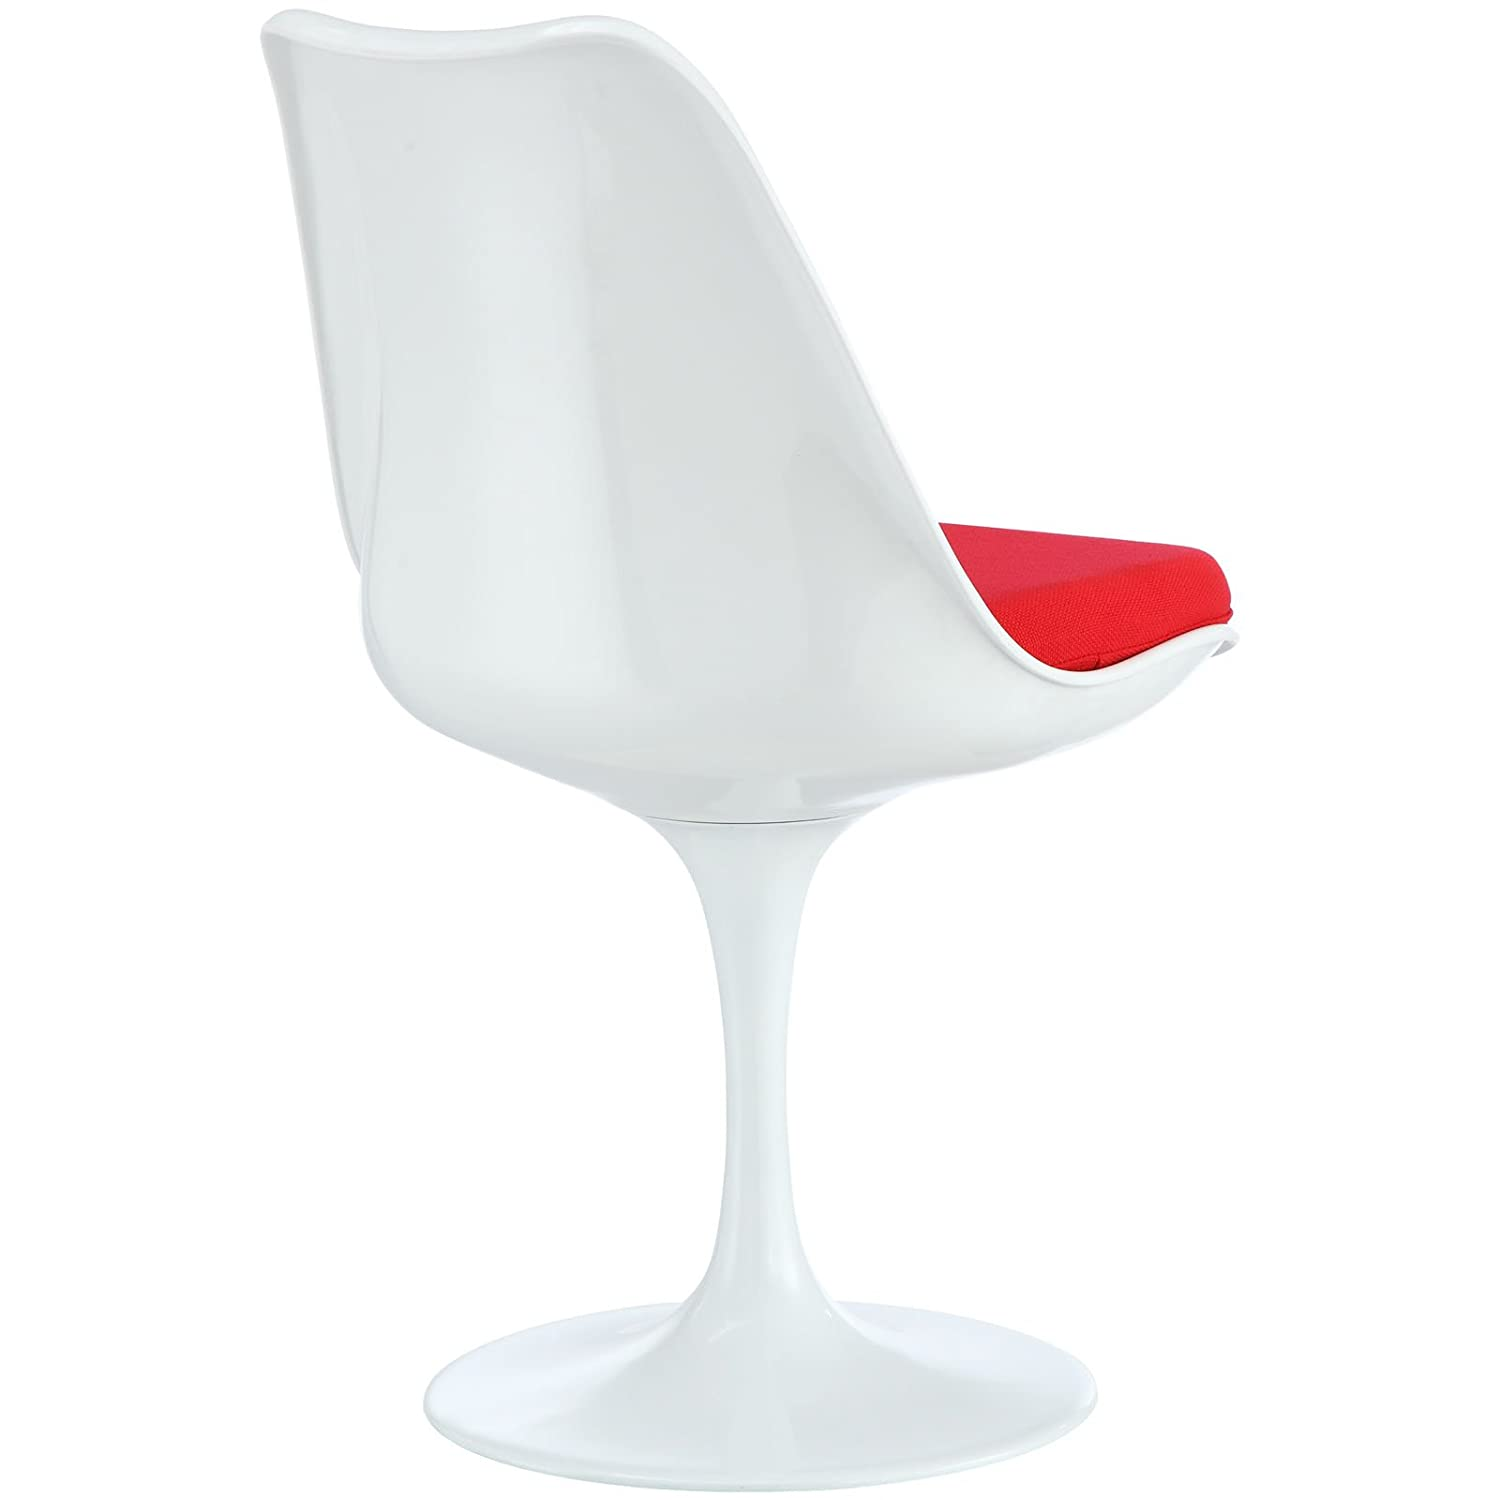 Modway Lippa Dining Fabric Side Chair in Red